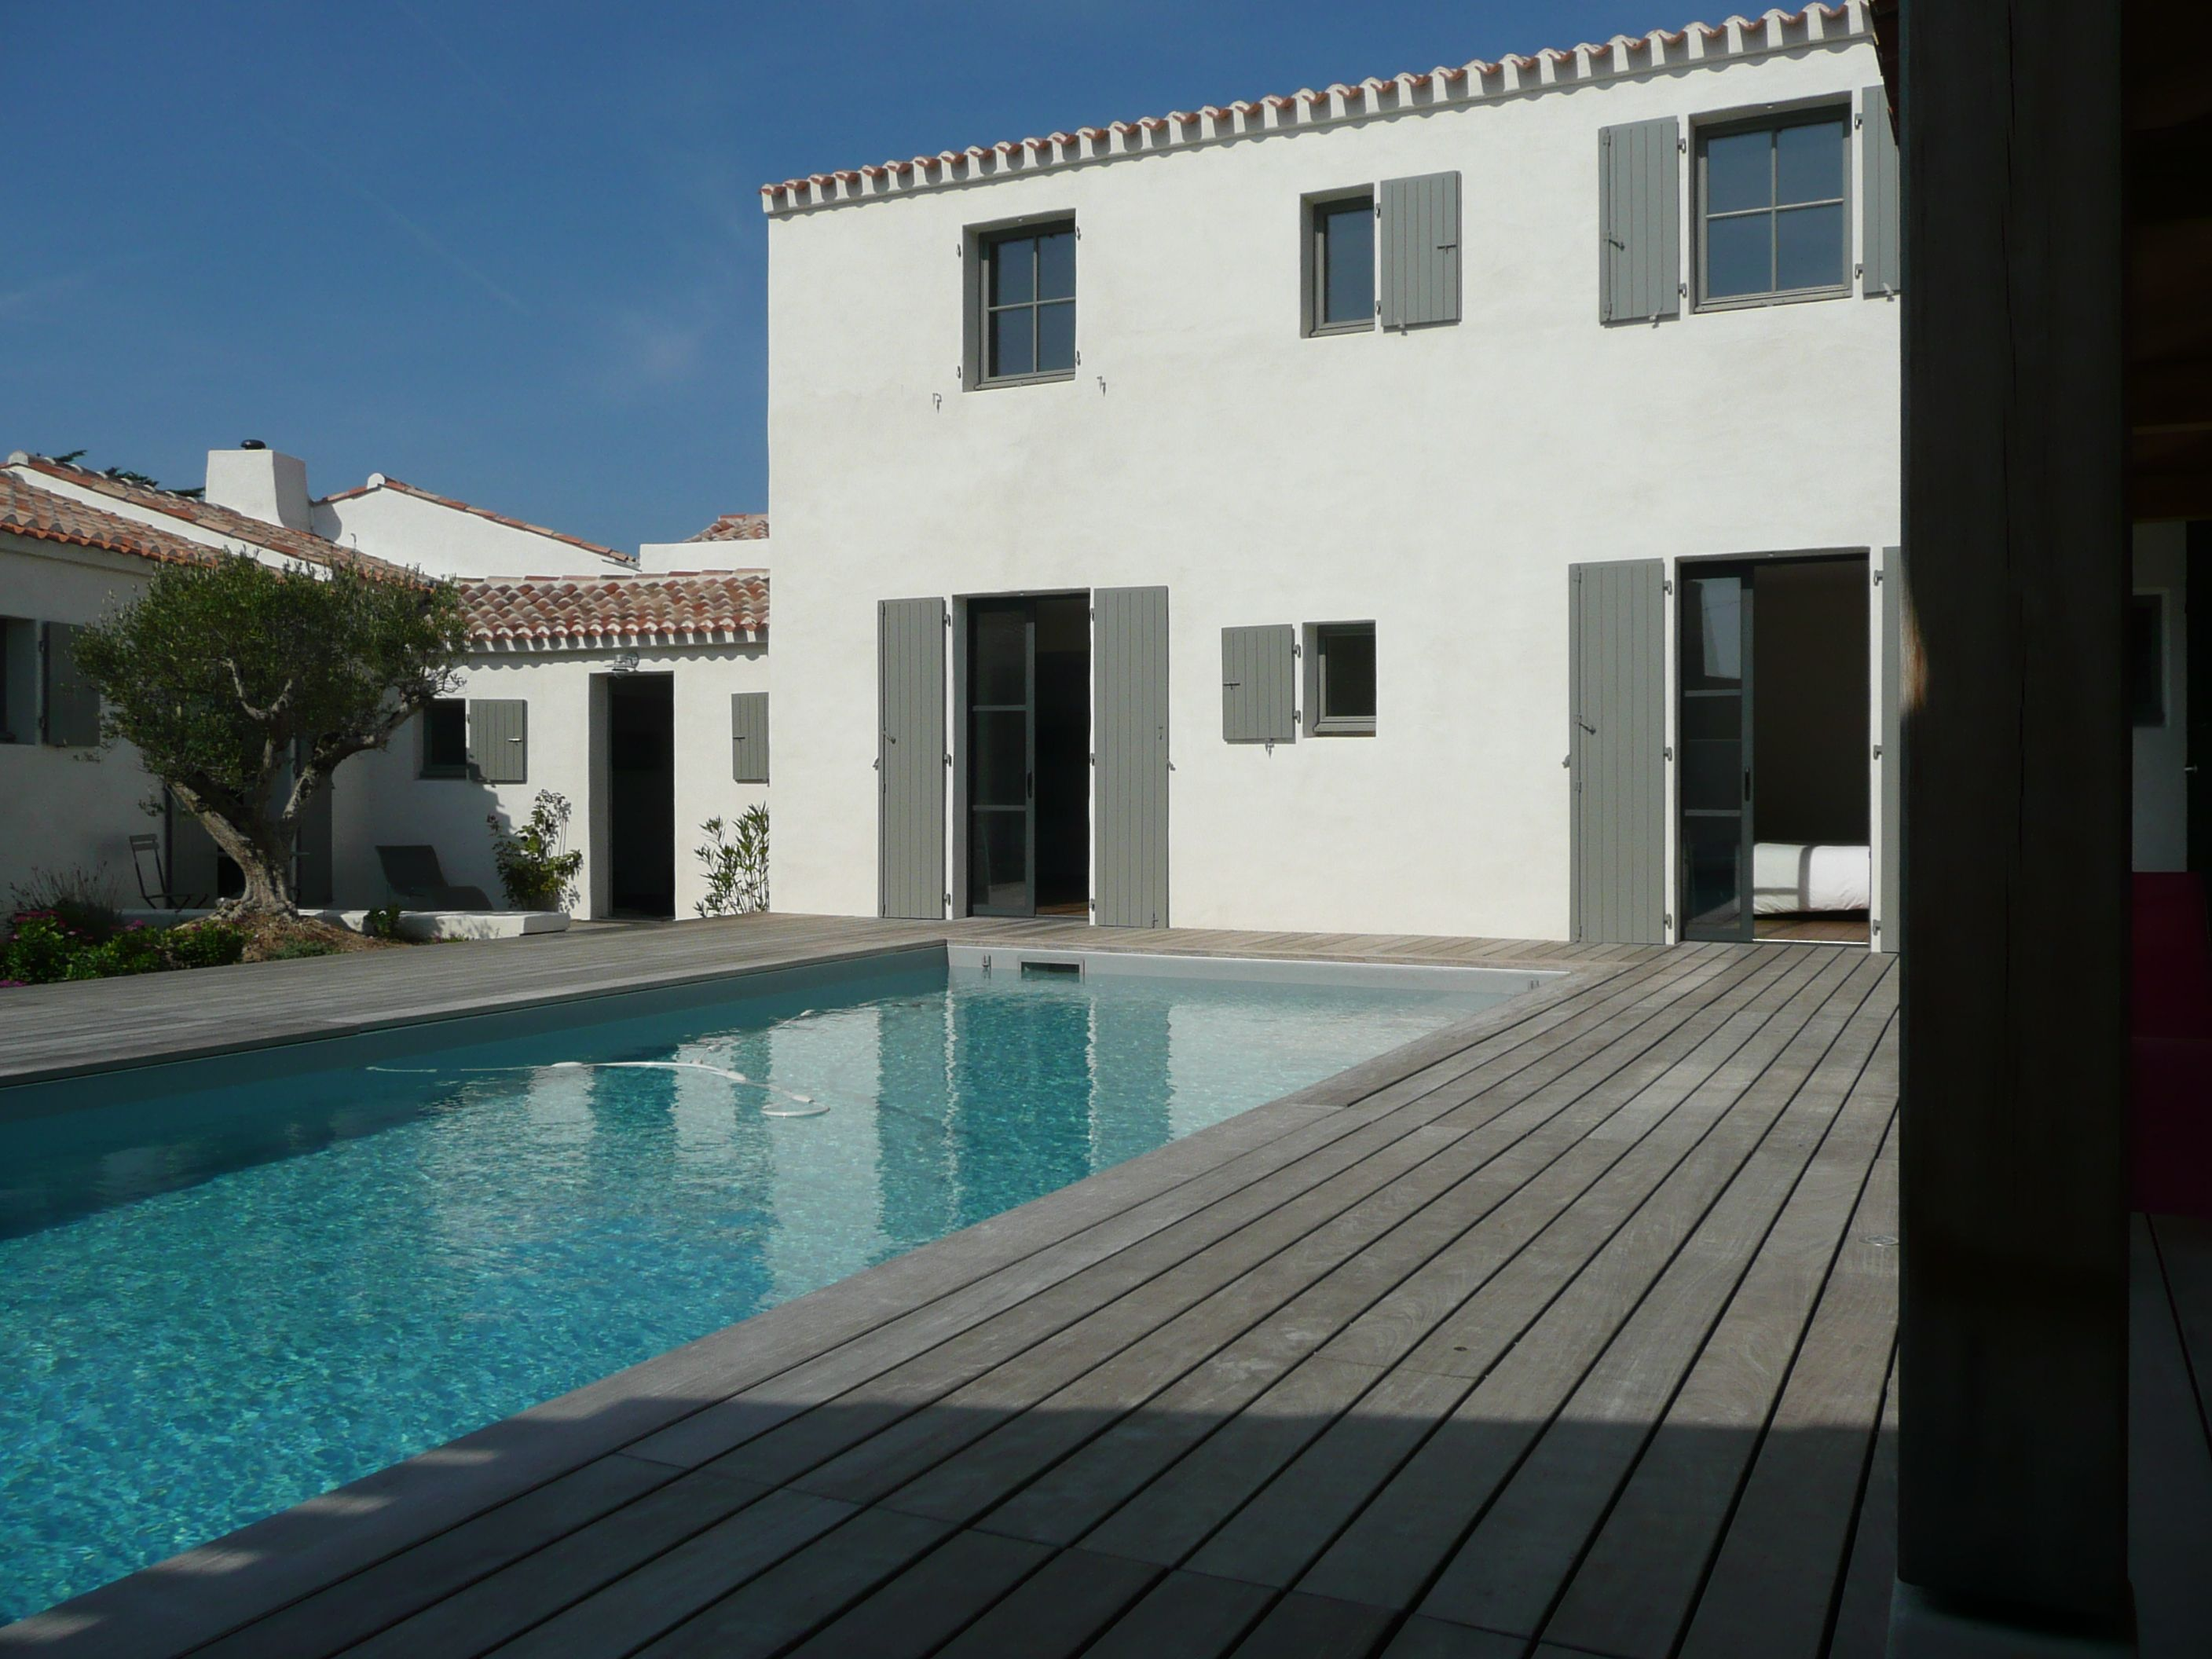 Maison noirmoutier maison pinterest swimming pools facades and archite - Maison a noirmoutier ...